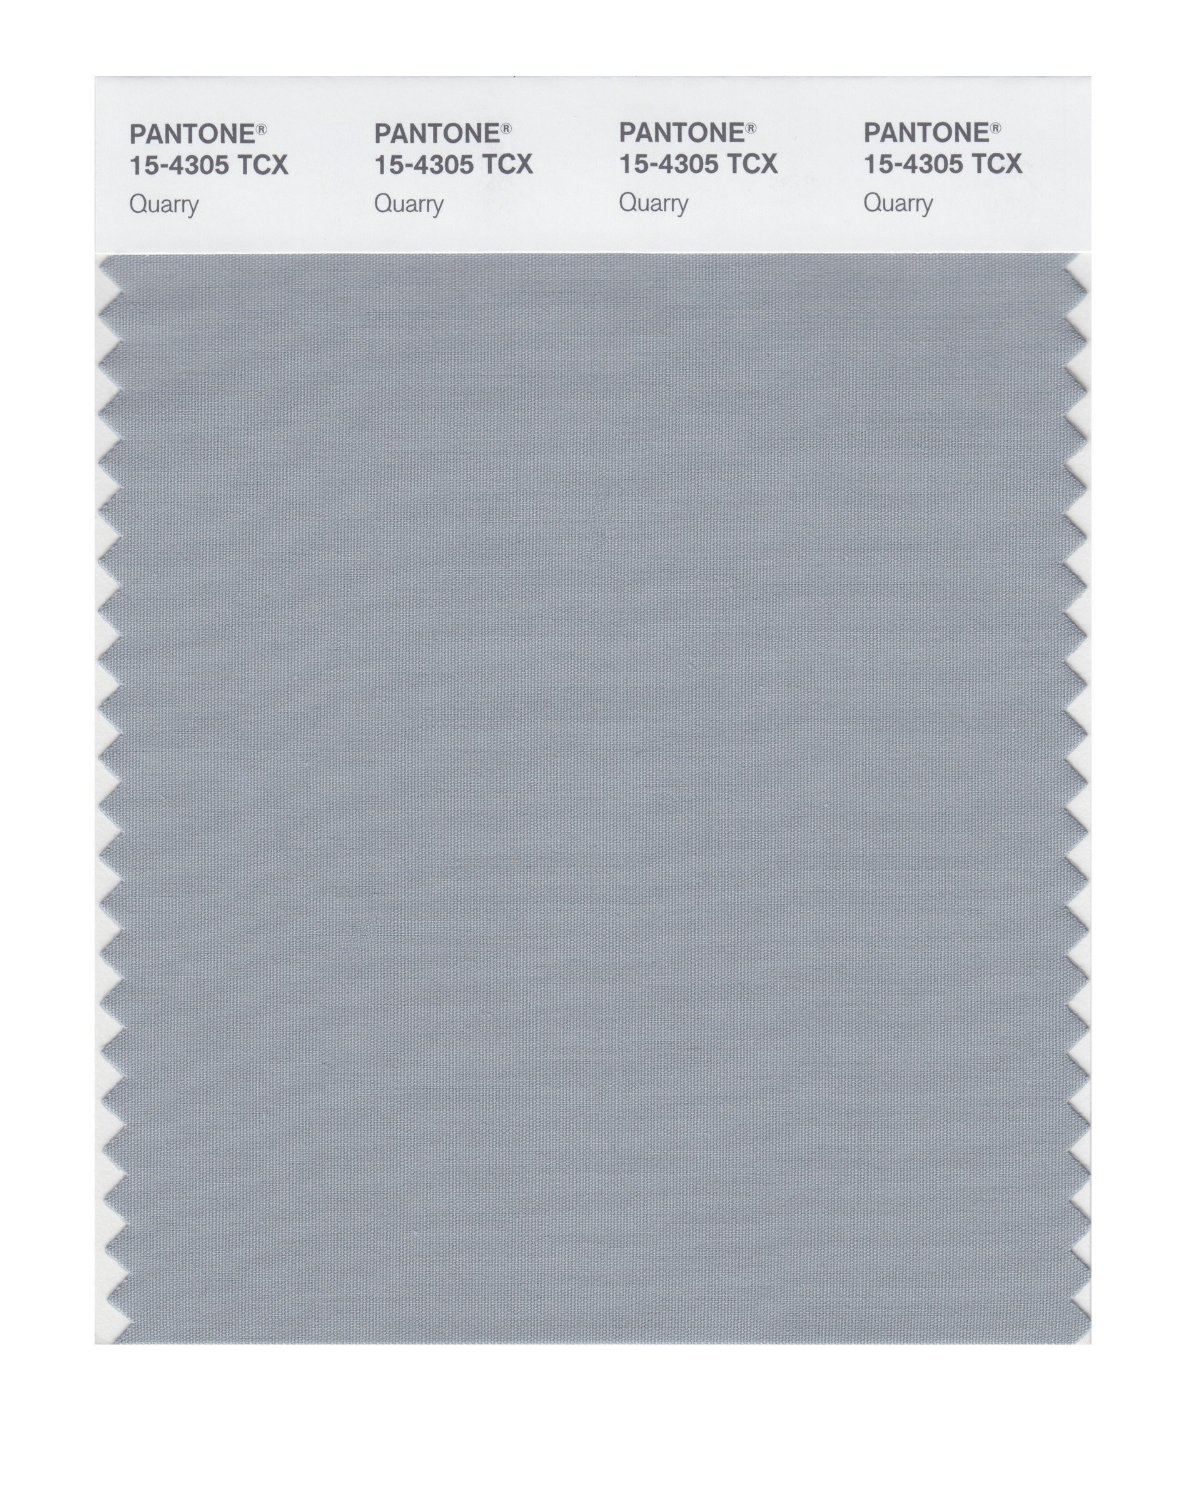 Pantone Smart Swatch 15-4305 Quarry